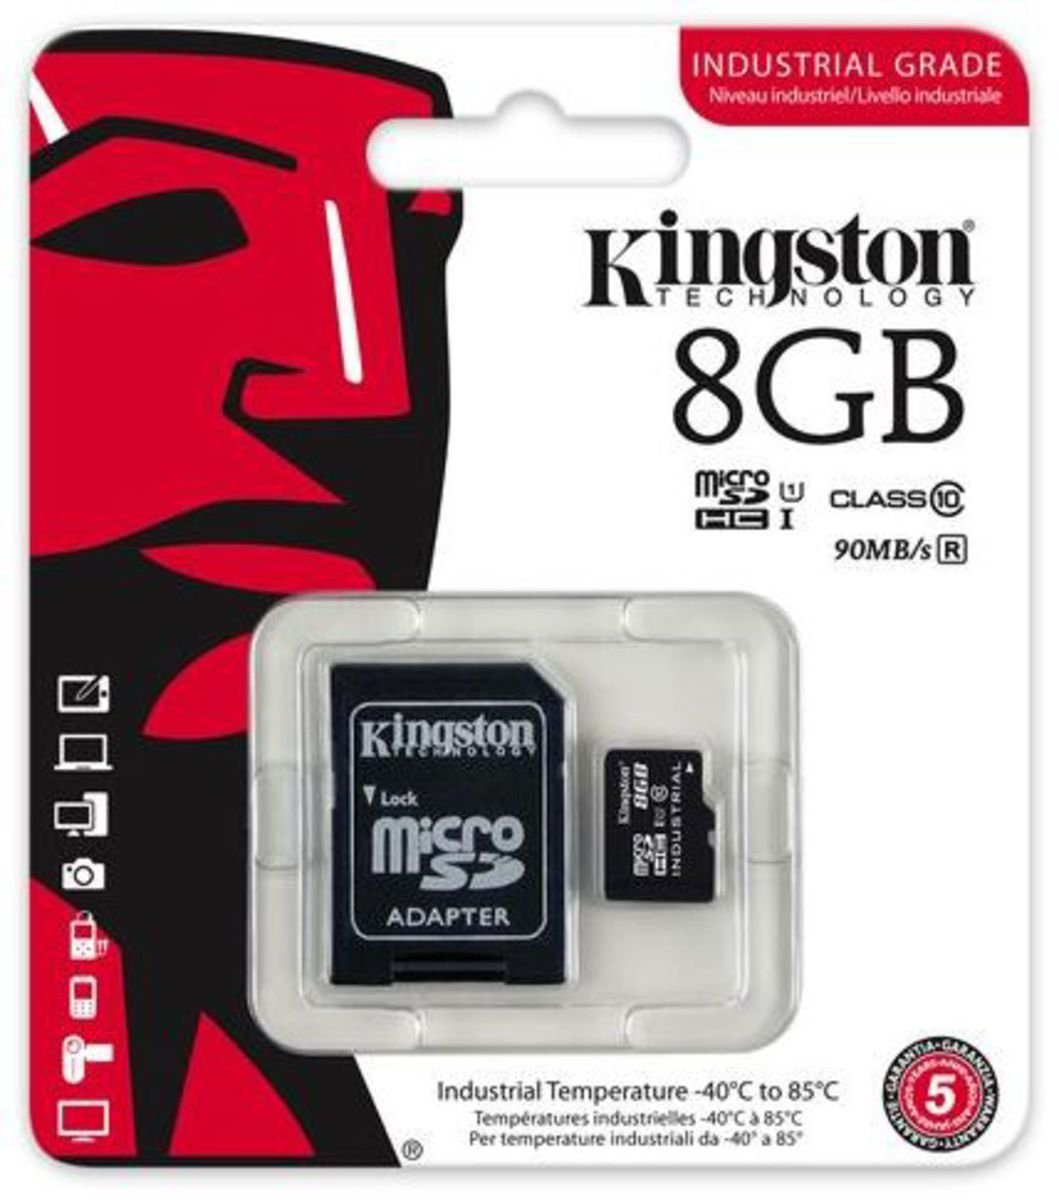 Kingston Speicherkarte »microSDHC Industrial Temp, UHS-1 mit Adapter, 8GB«